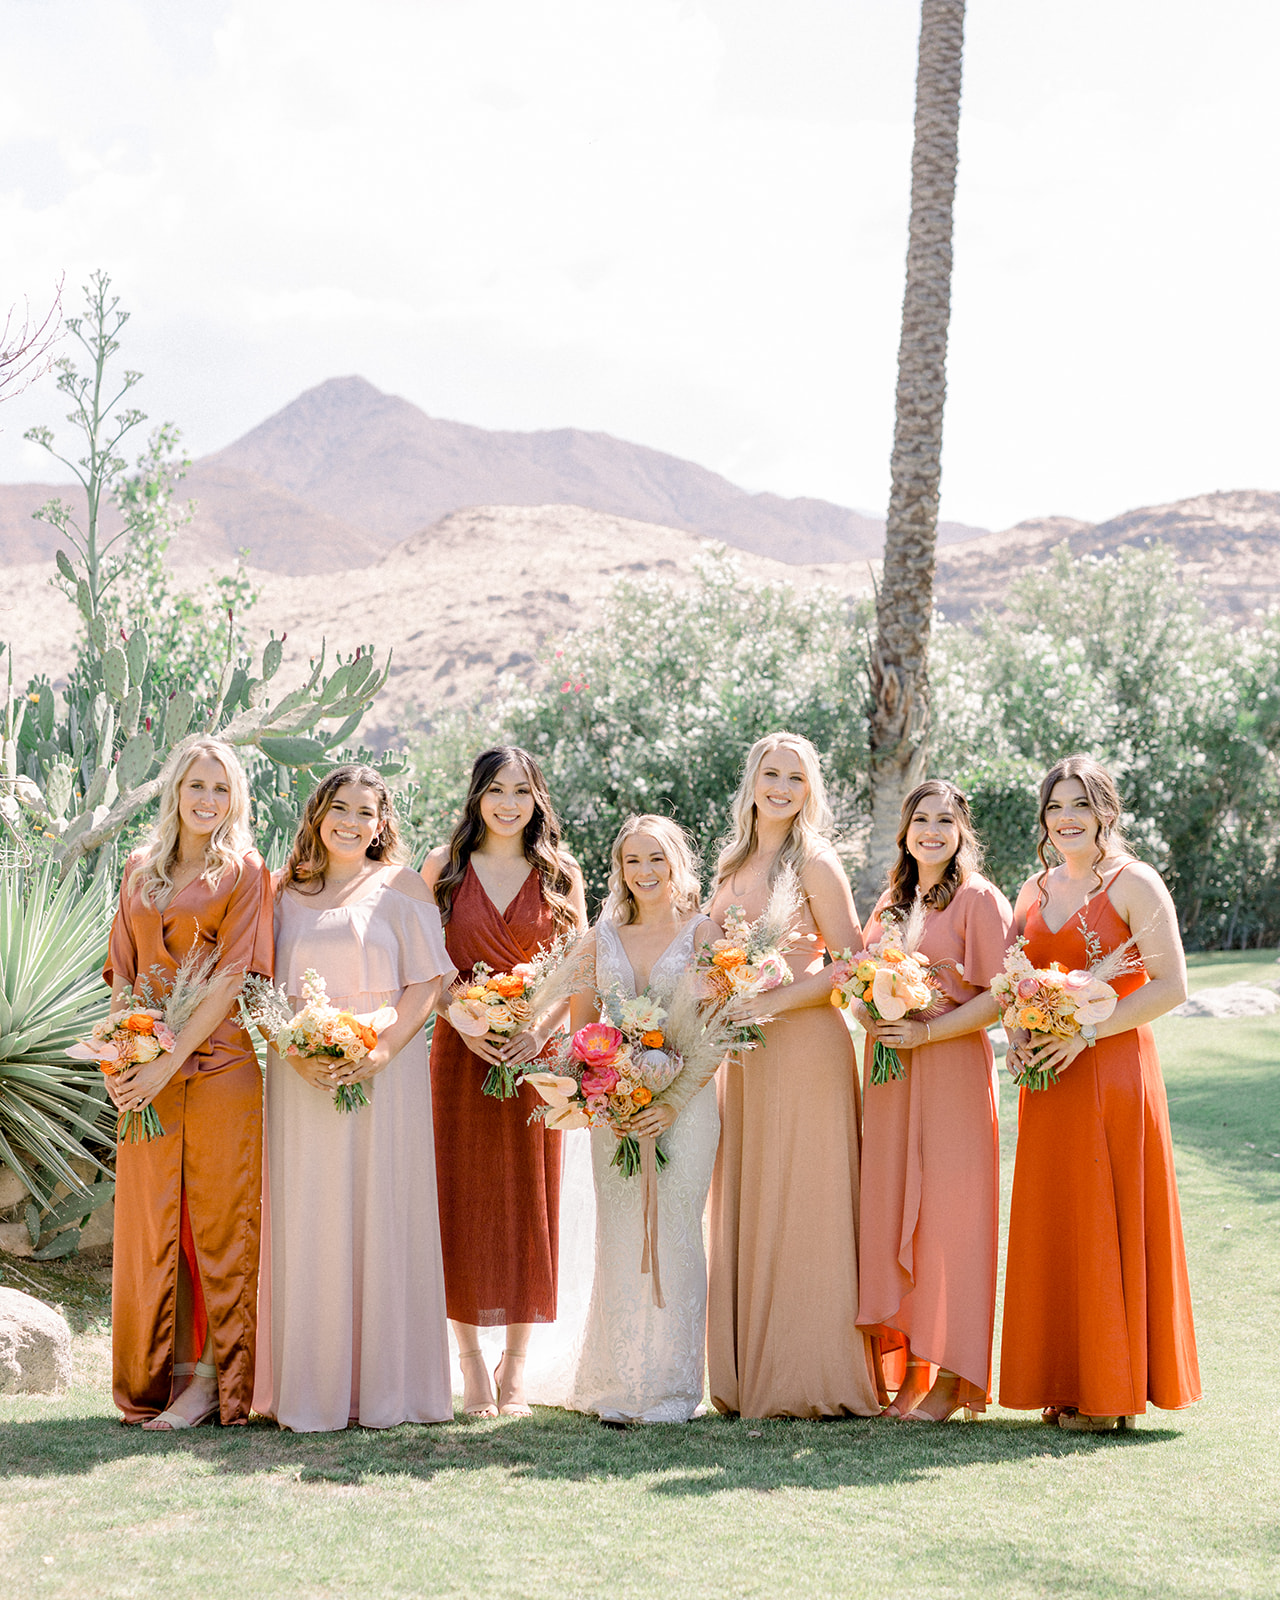 Rust orange bridesmaid dresses at colorful Palm Springs wedding by Lucky Day Events Co. Our Story Creative